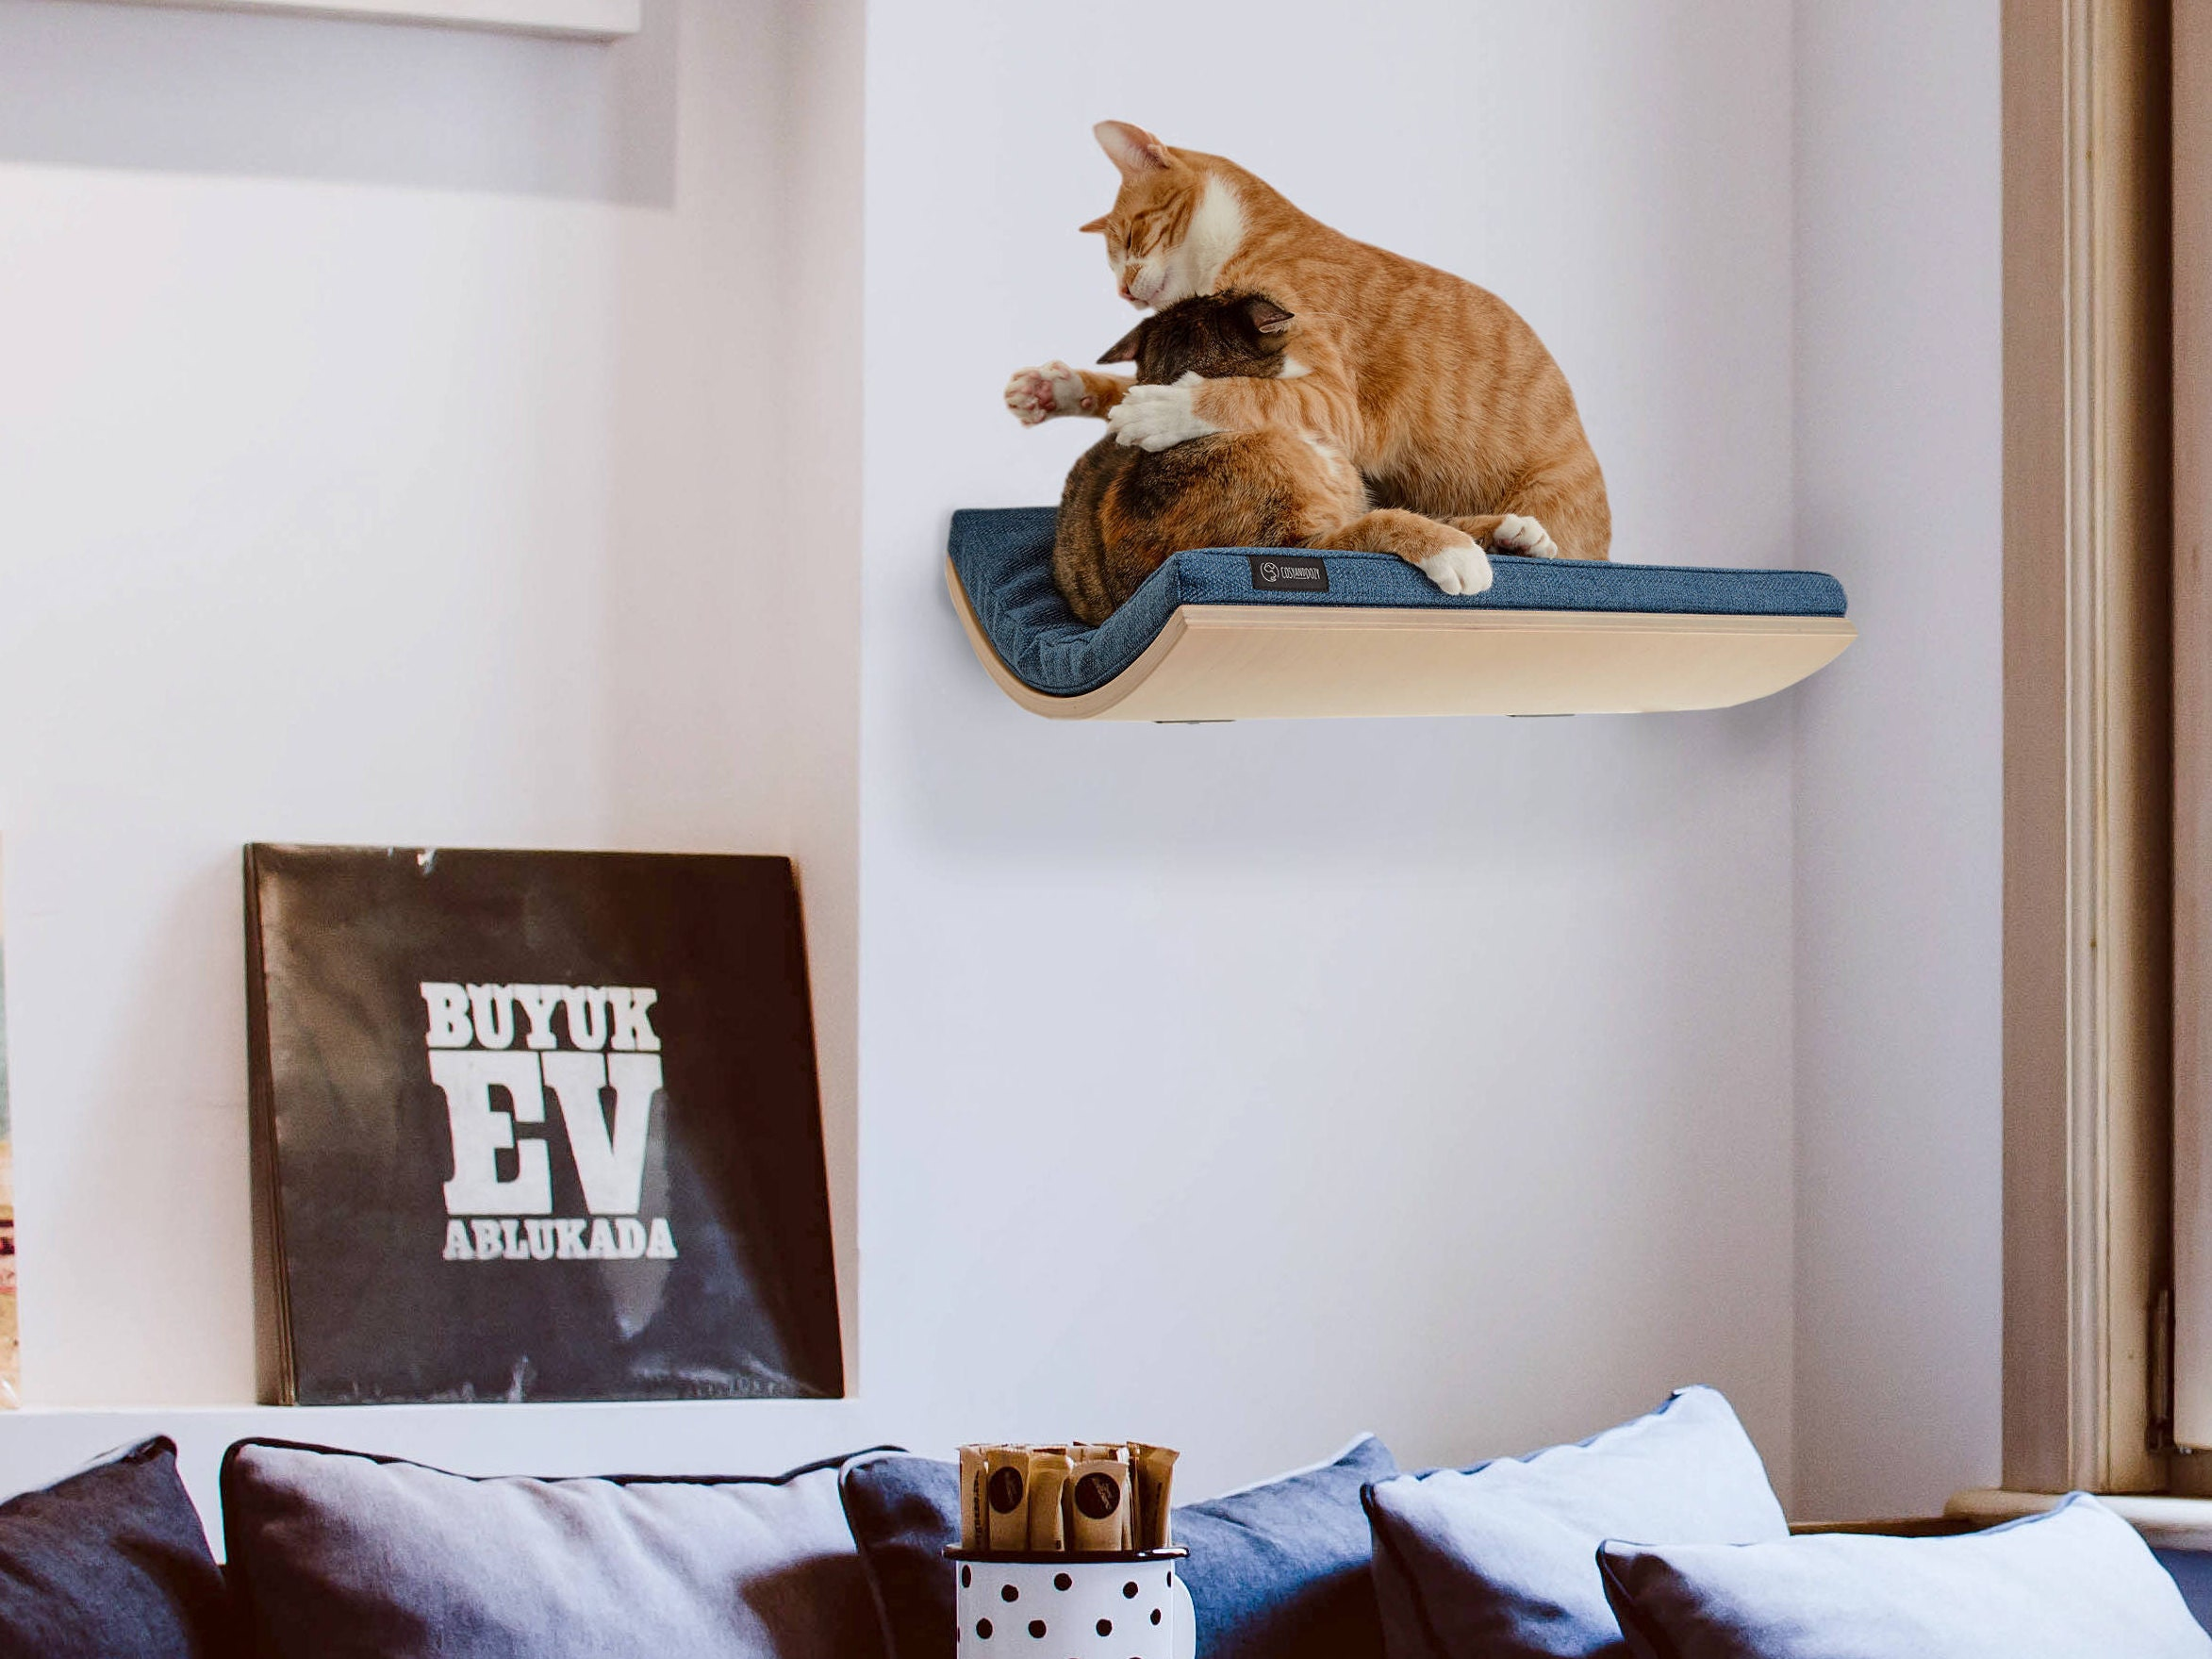 Curved cat shelf wall mounted shelf cat furniture cushion soft cat shelf pet supplies wall mounted perch cat bed wave shelf tweed blue cushion cosy amipublicfo Image collections